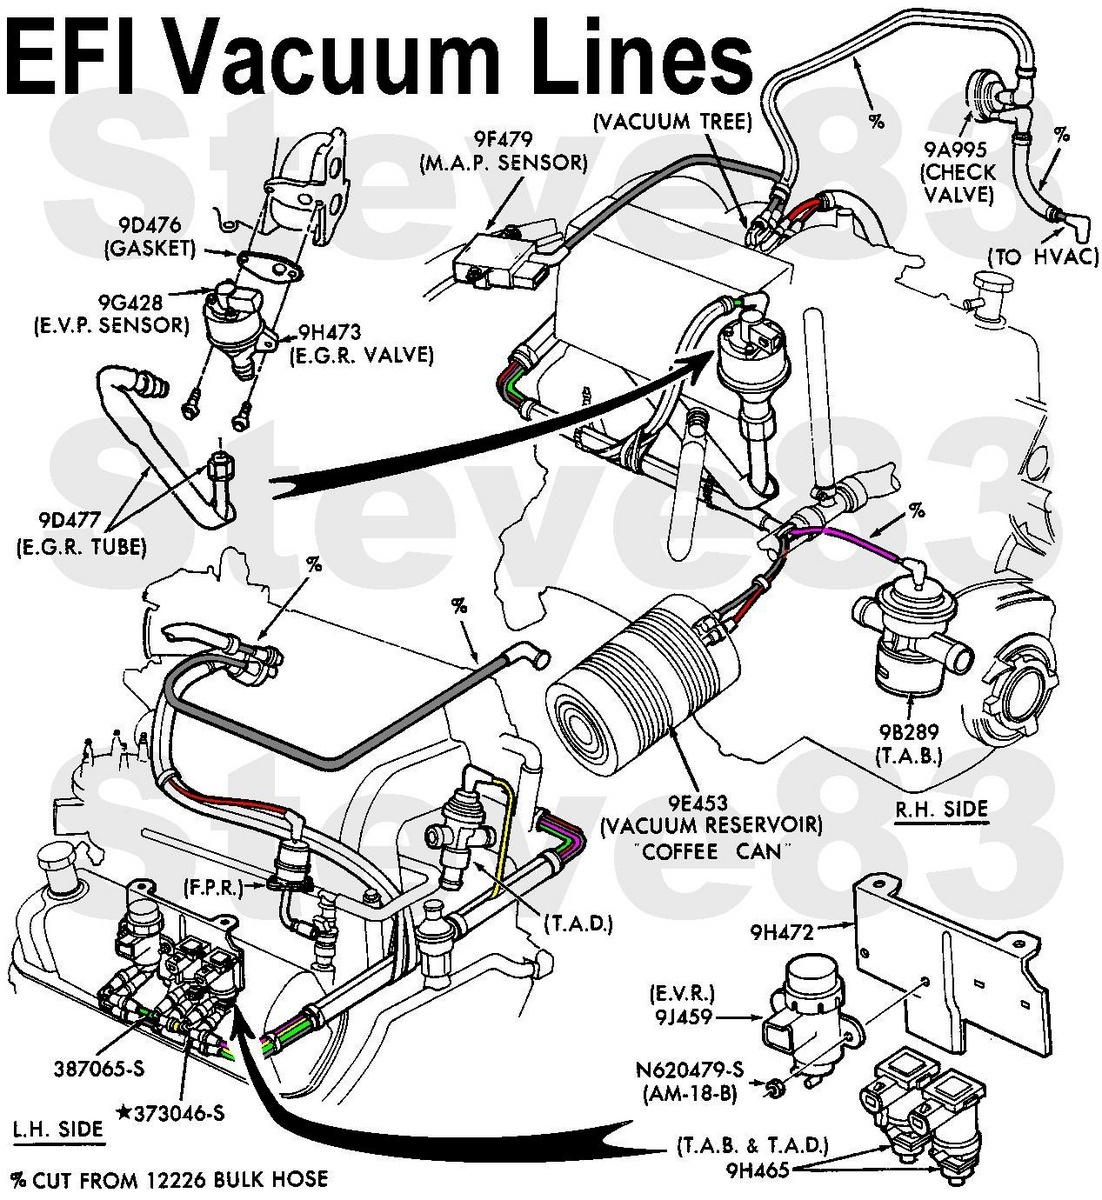 hight resolution of ford f 150 questions is there a diagram for vacuum hoses on 1990 1995 ford f 250 vacuum diagram 1988 ford f 150 302 vacuum lines diagram